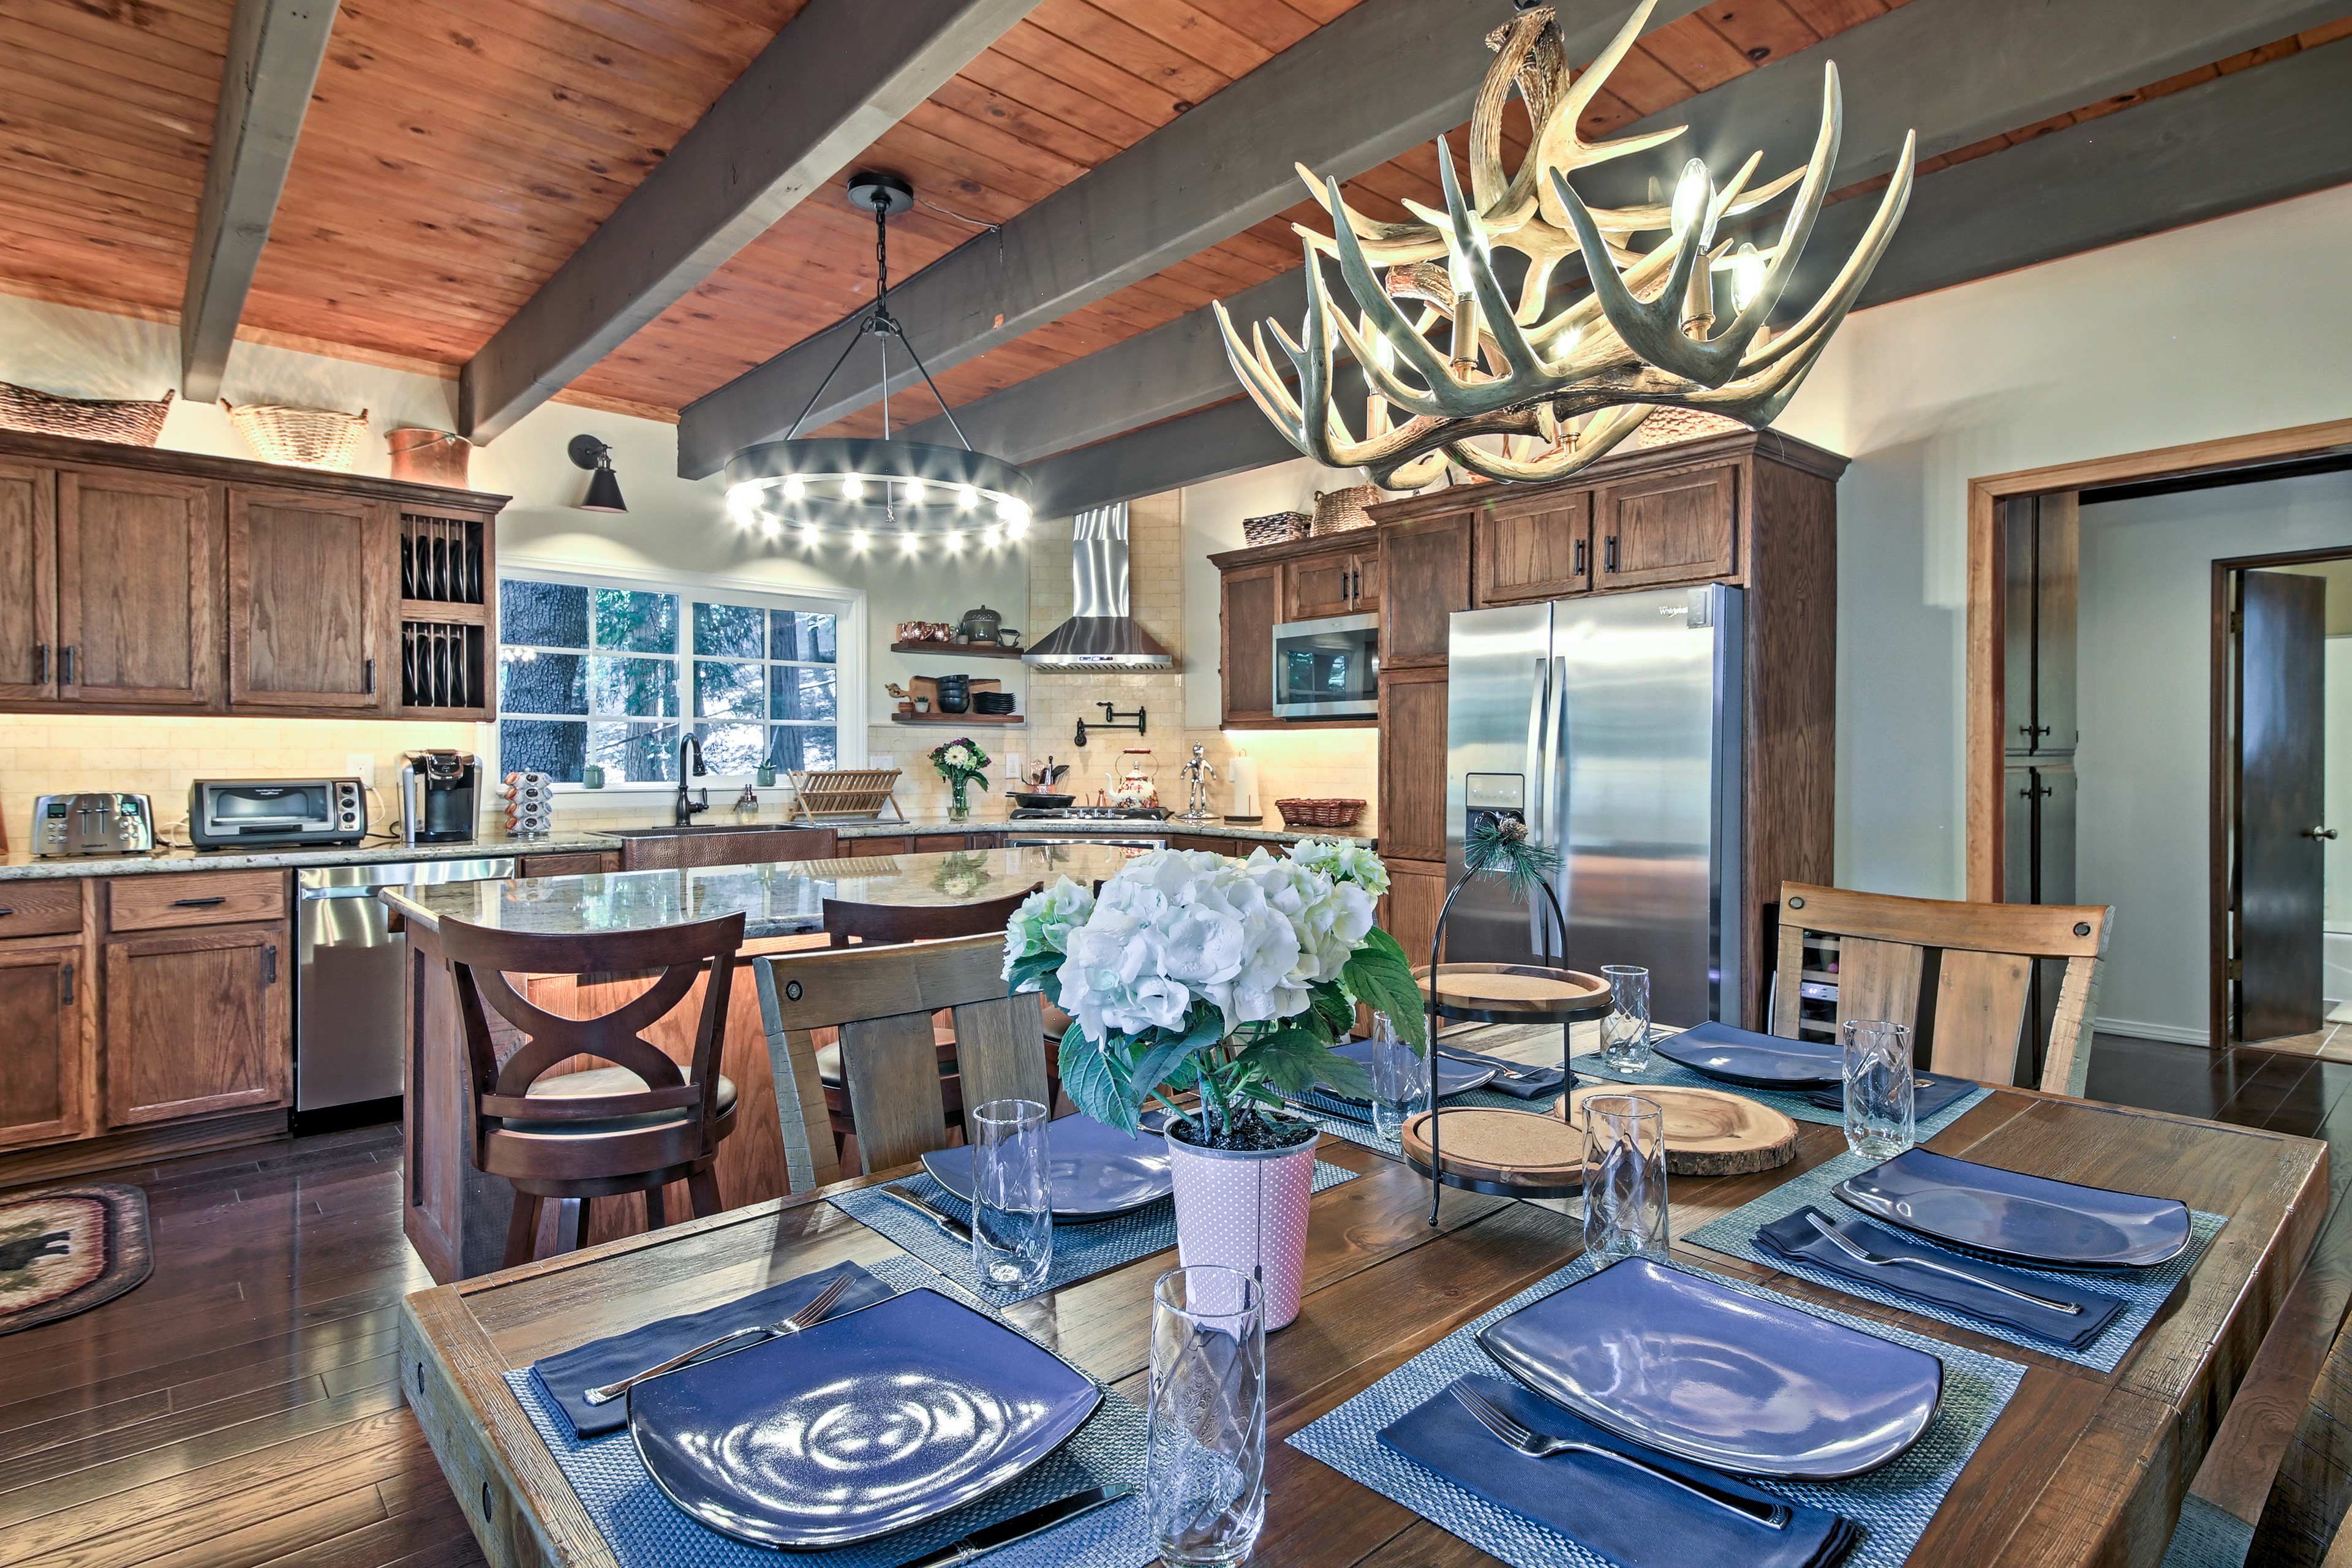 Modern elegance and rustic decor blend to create the perfect mountain escape.